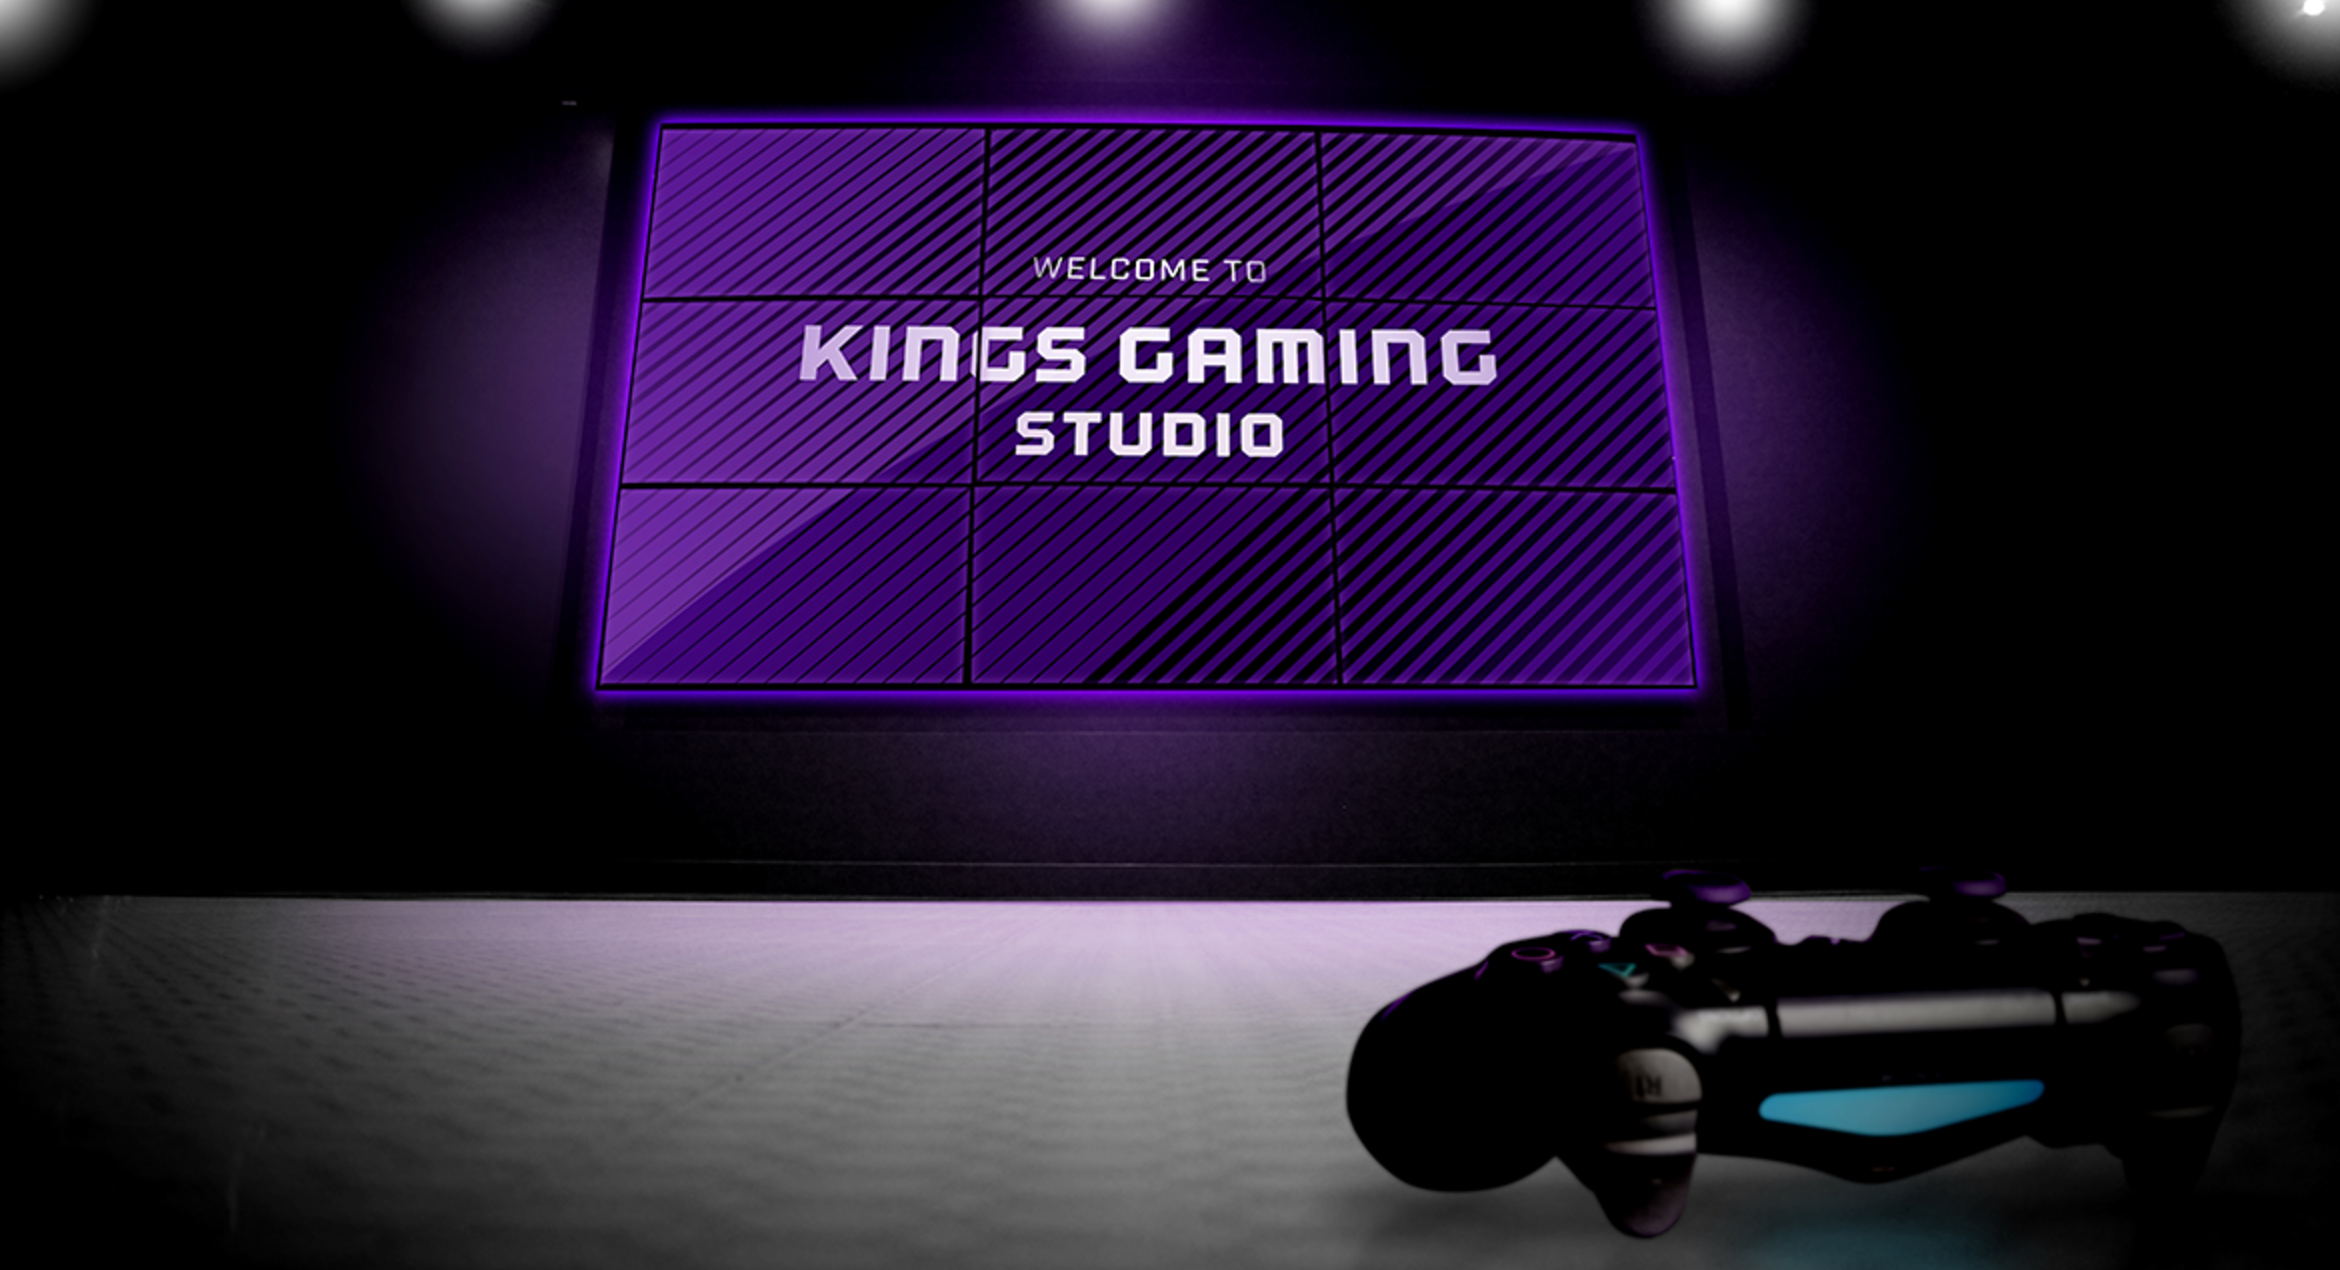 Kings Gaming